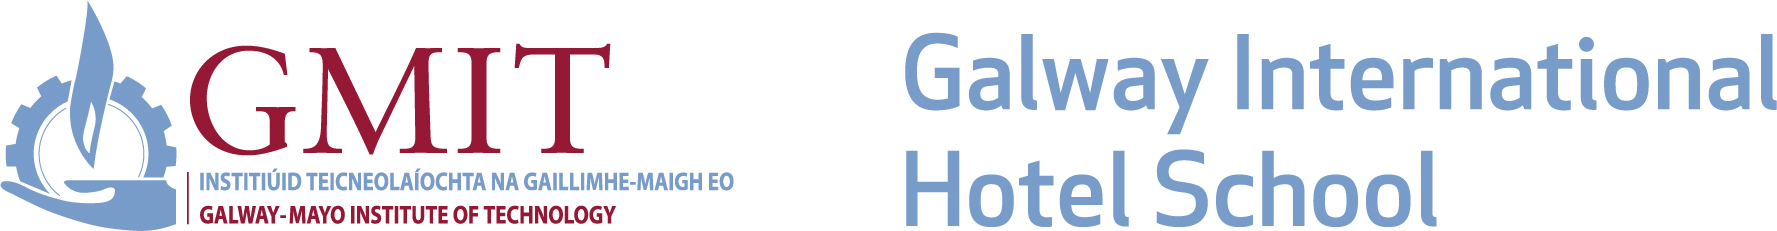 Galway-International-Hotel-School-new-logo.jpg